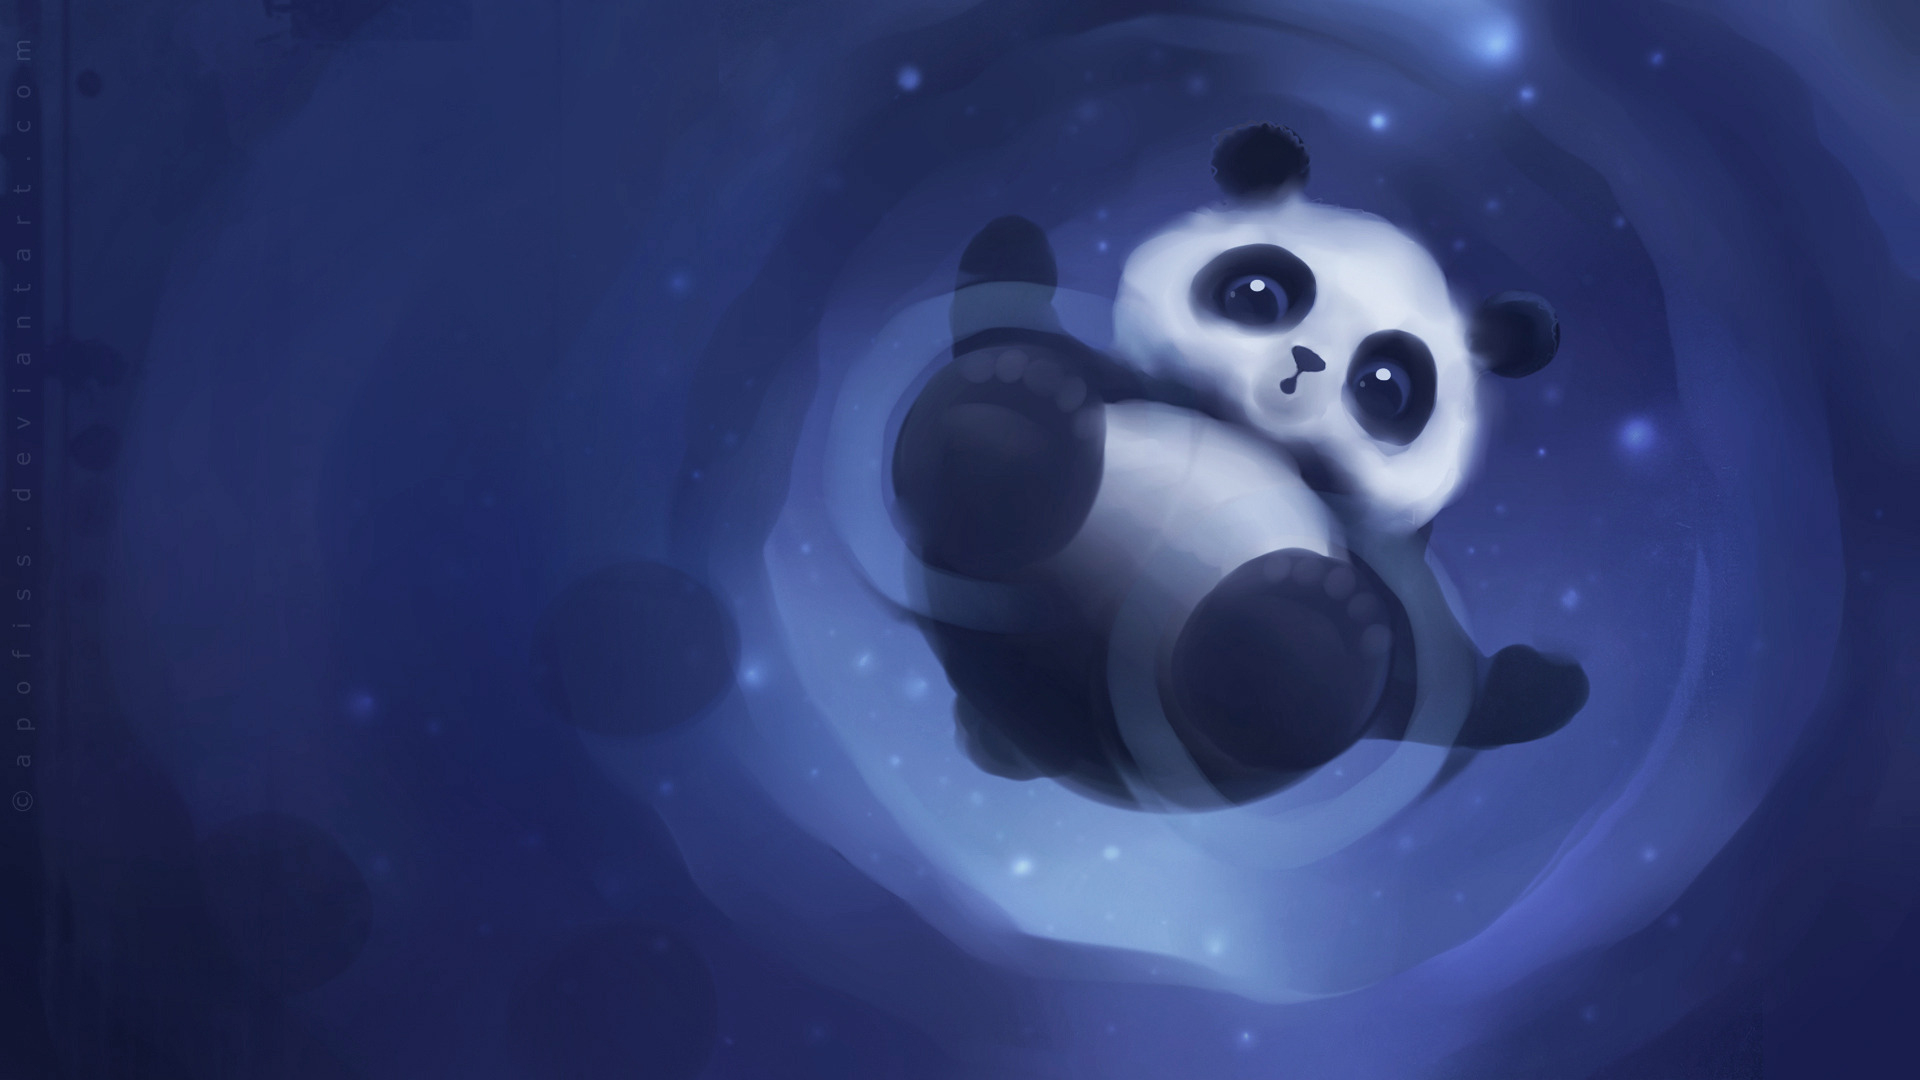 46909 download wallpaper Animals, Pictures, Pandas screensavers and pictures for free